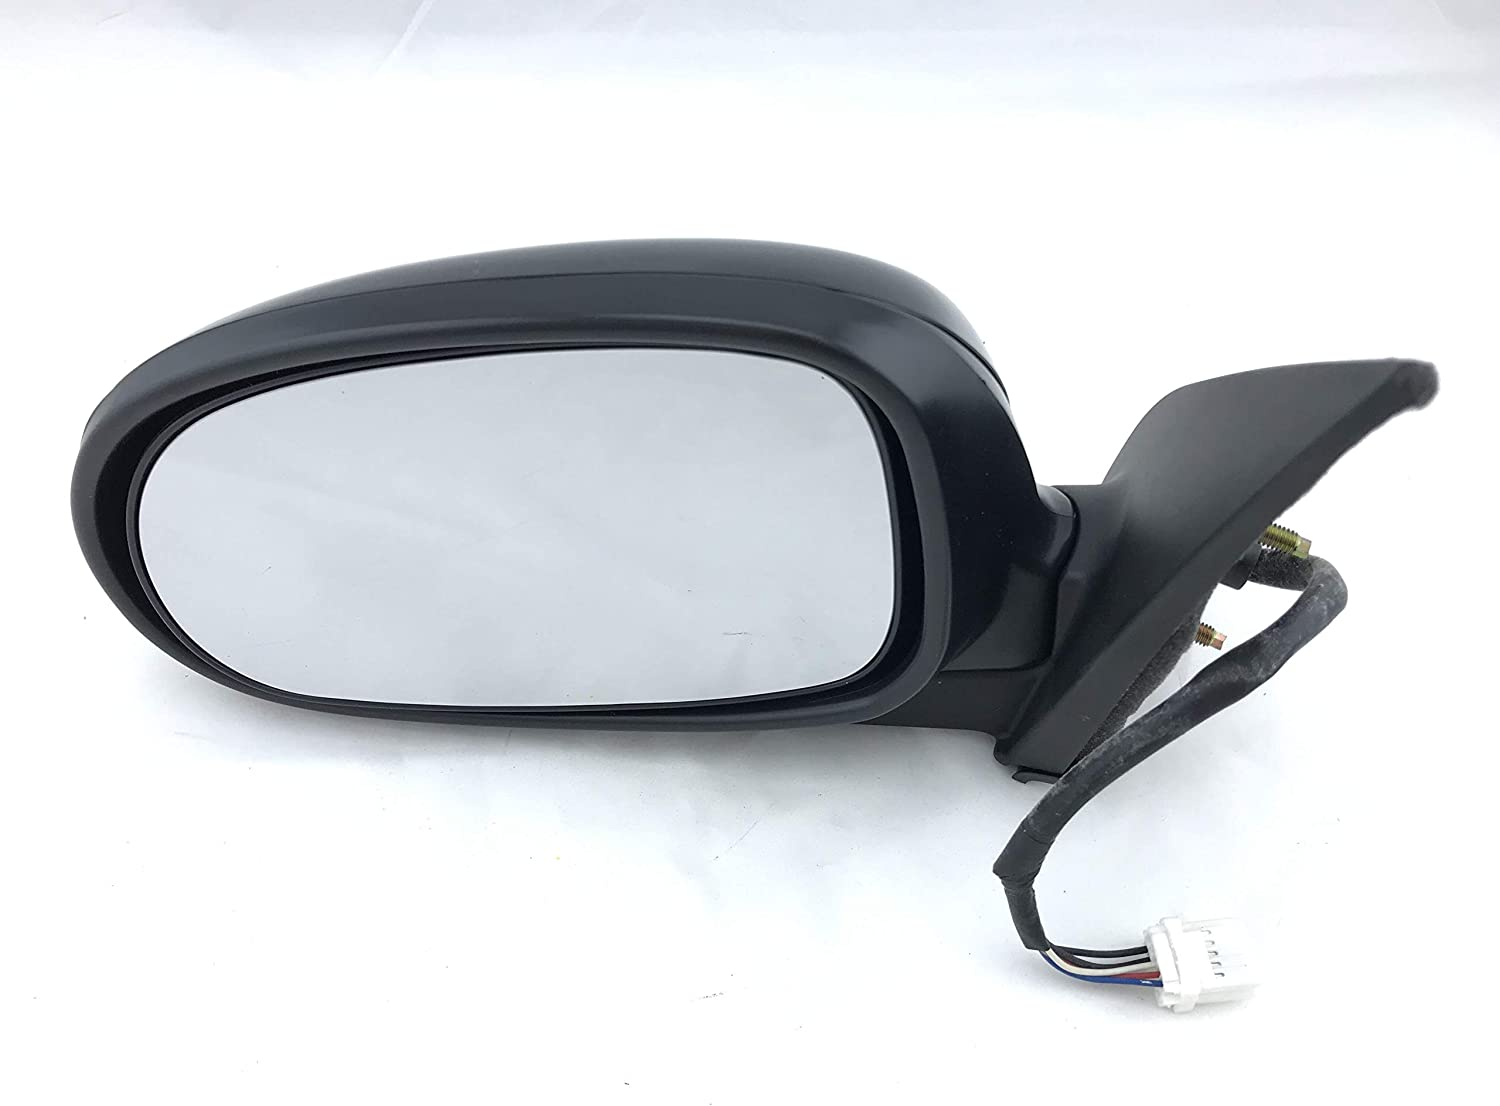 OE:963023Y101 NI1320135 Passenger Side Left Rear View Mirror Replacement for NISSAN 00-03 MAXIMA Parts Link #